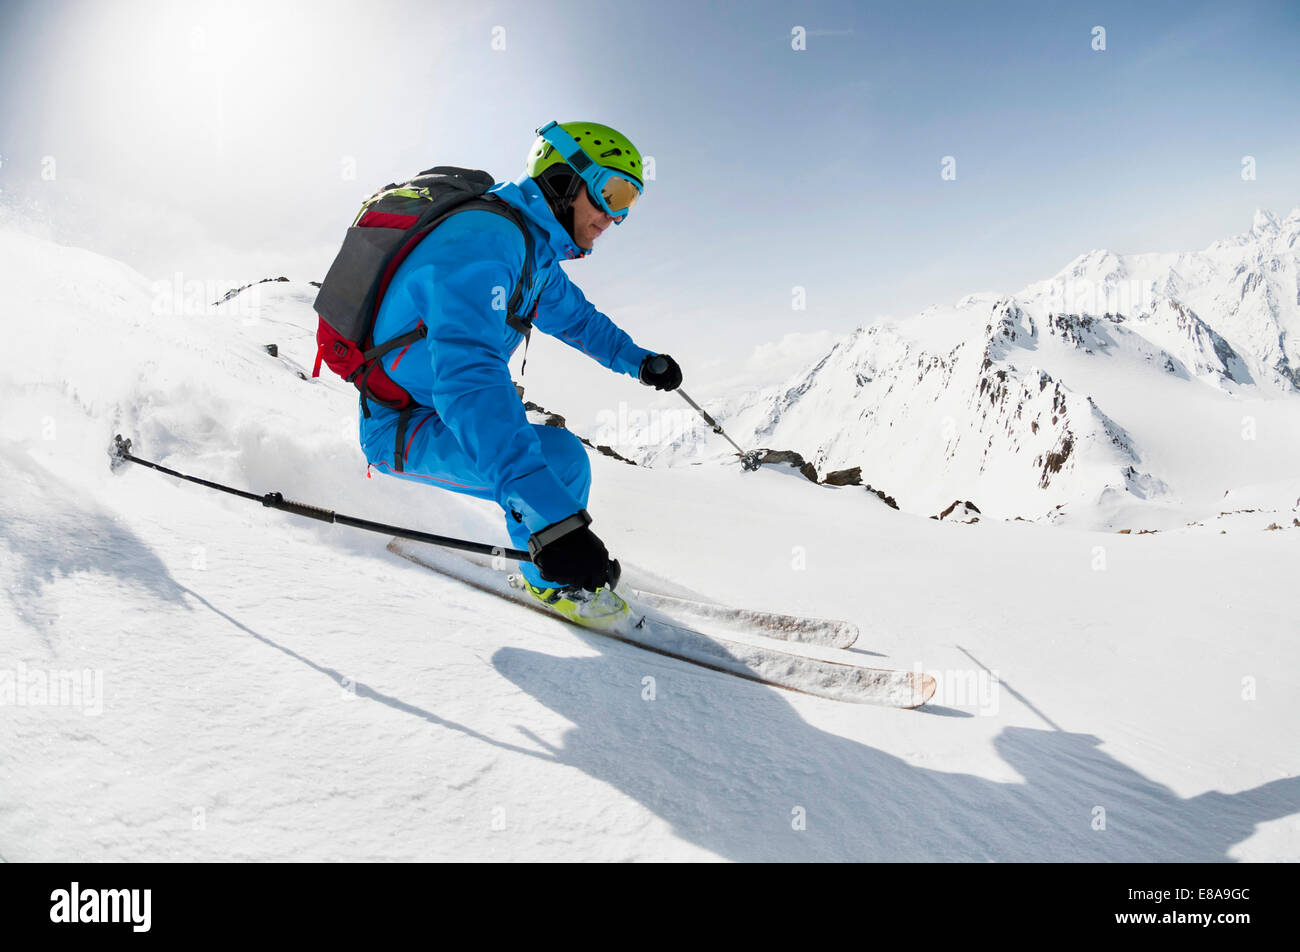 Homme Ski alpin ski Alpes forte pente Photo Stock